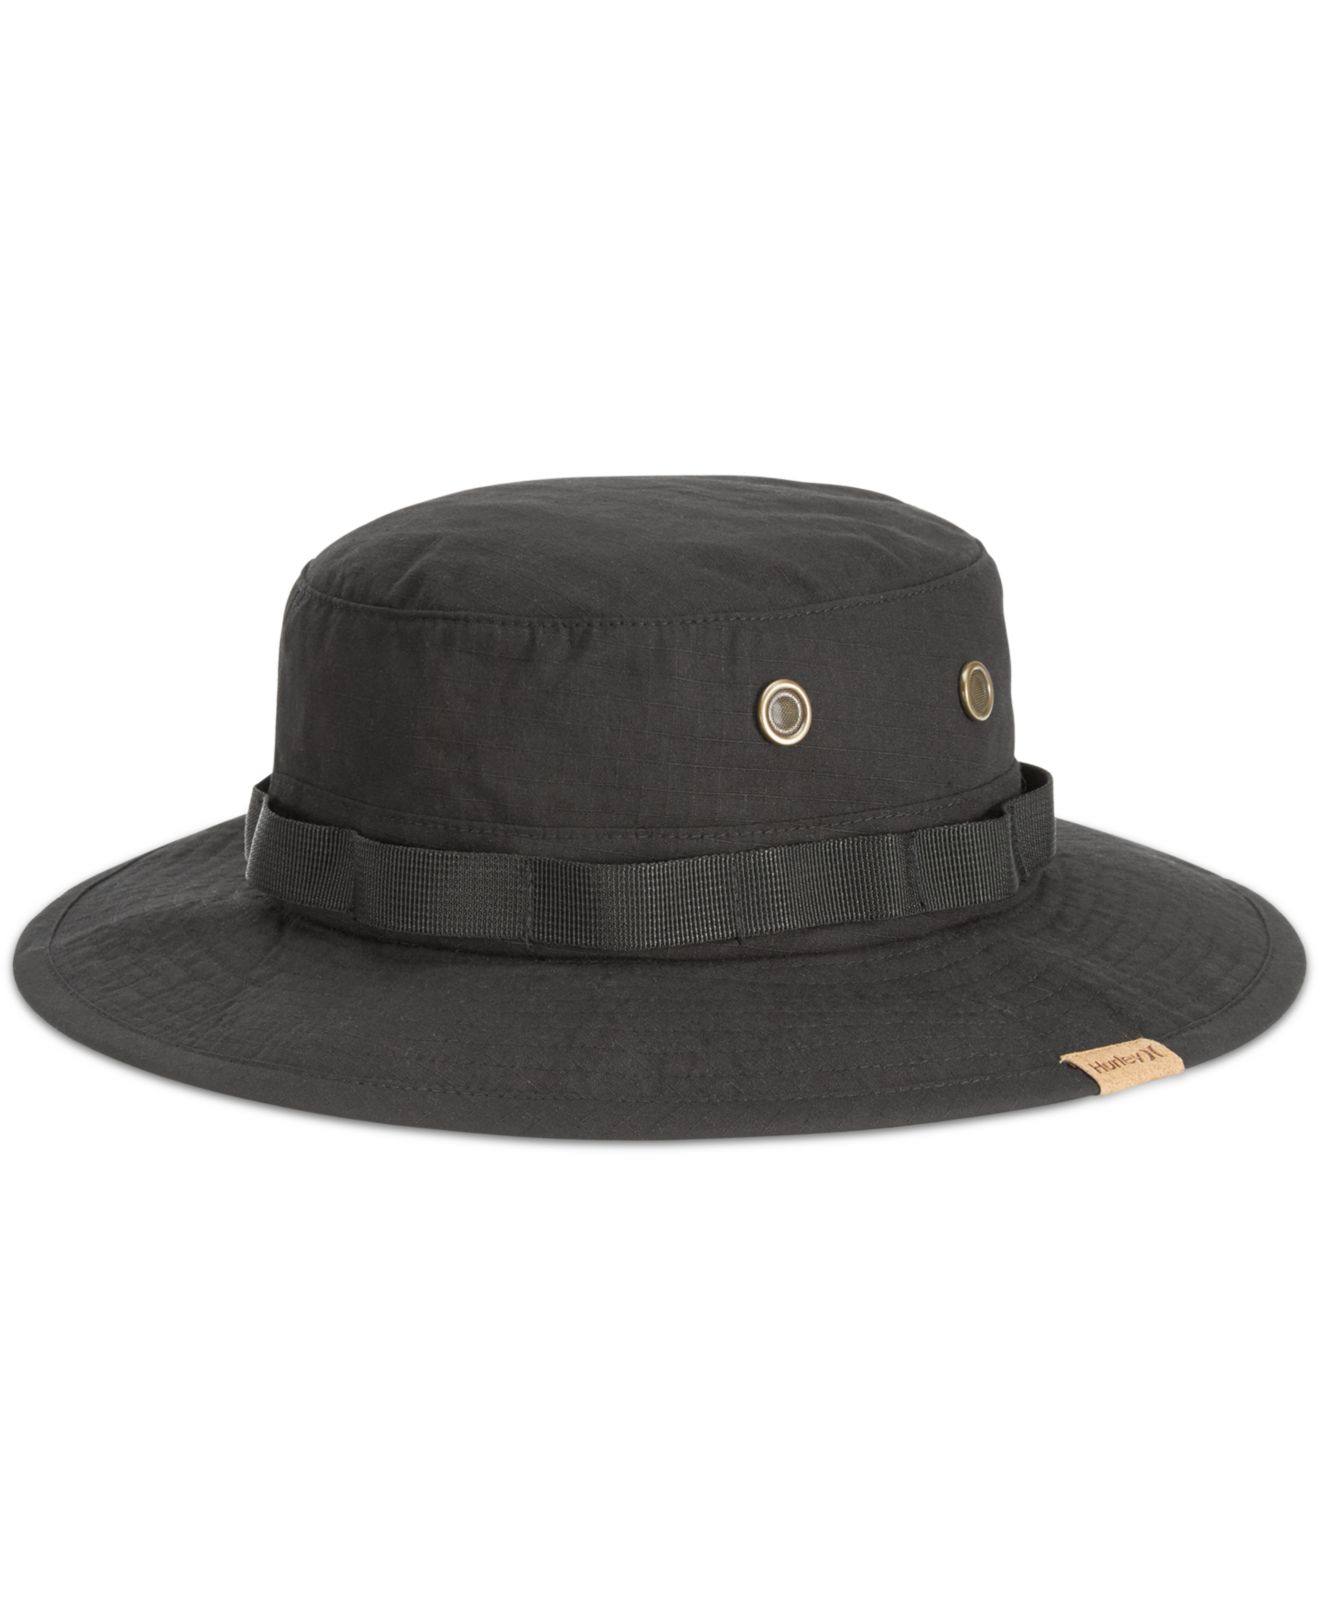 5ff49cd97 coupon for hurley boonie hat 086e7 e8059